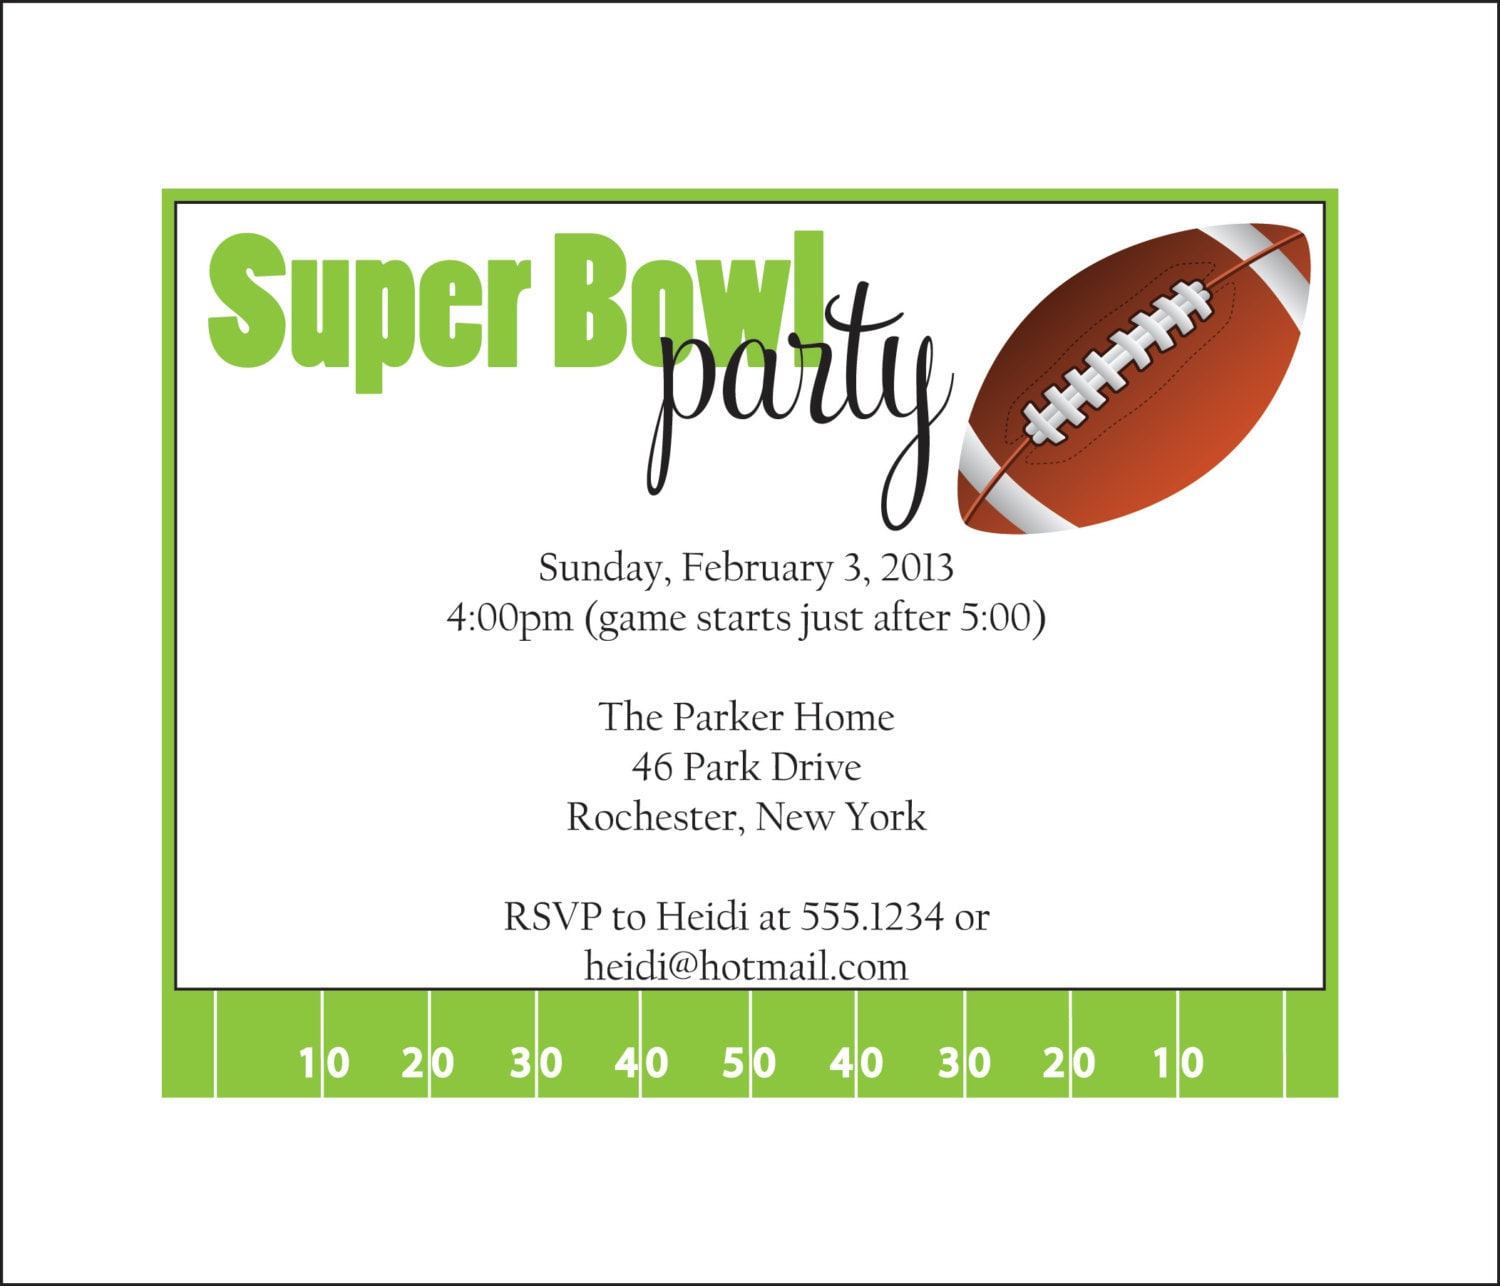 Super Bowl party invitation set of 10 by SimplyStampedInvites